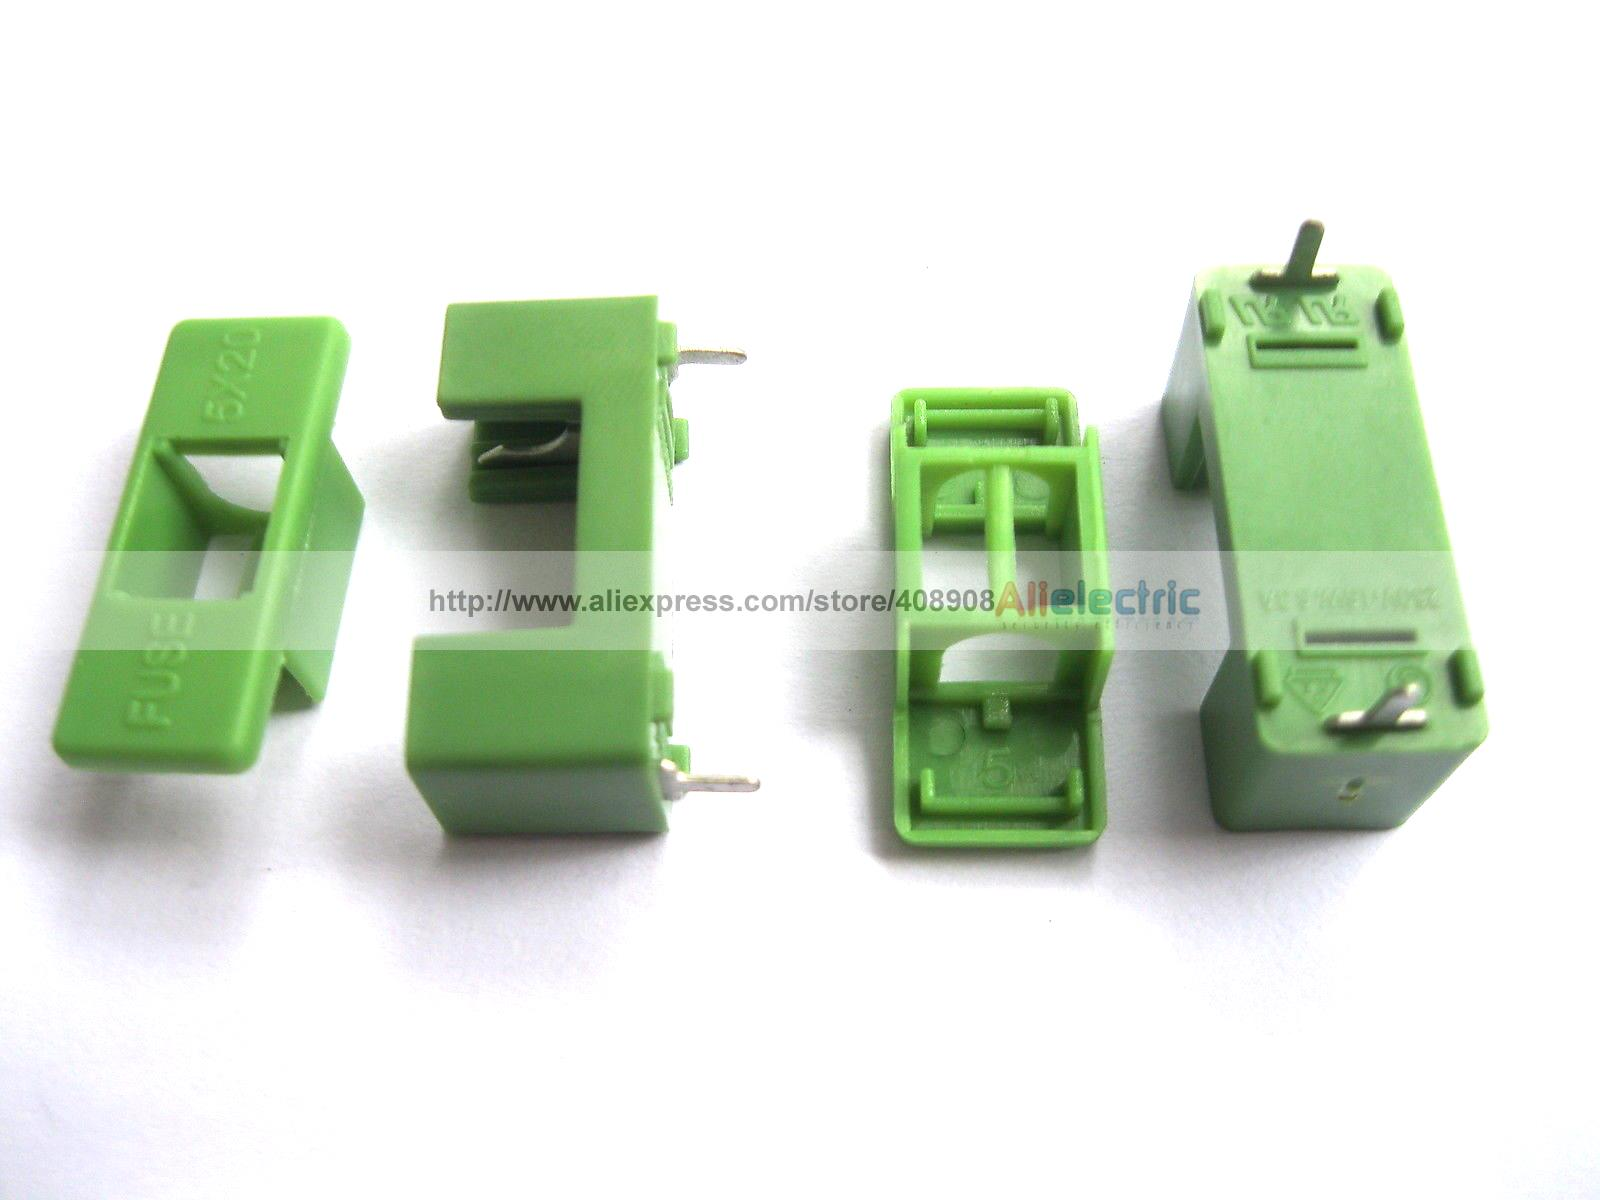 100 Pcs PTF 7 DIP Fuse Holder 6 3A 250V Used for 5x20 Green Color цены